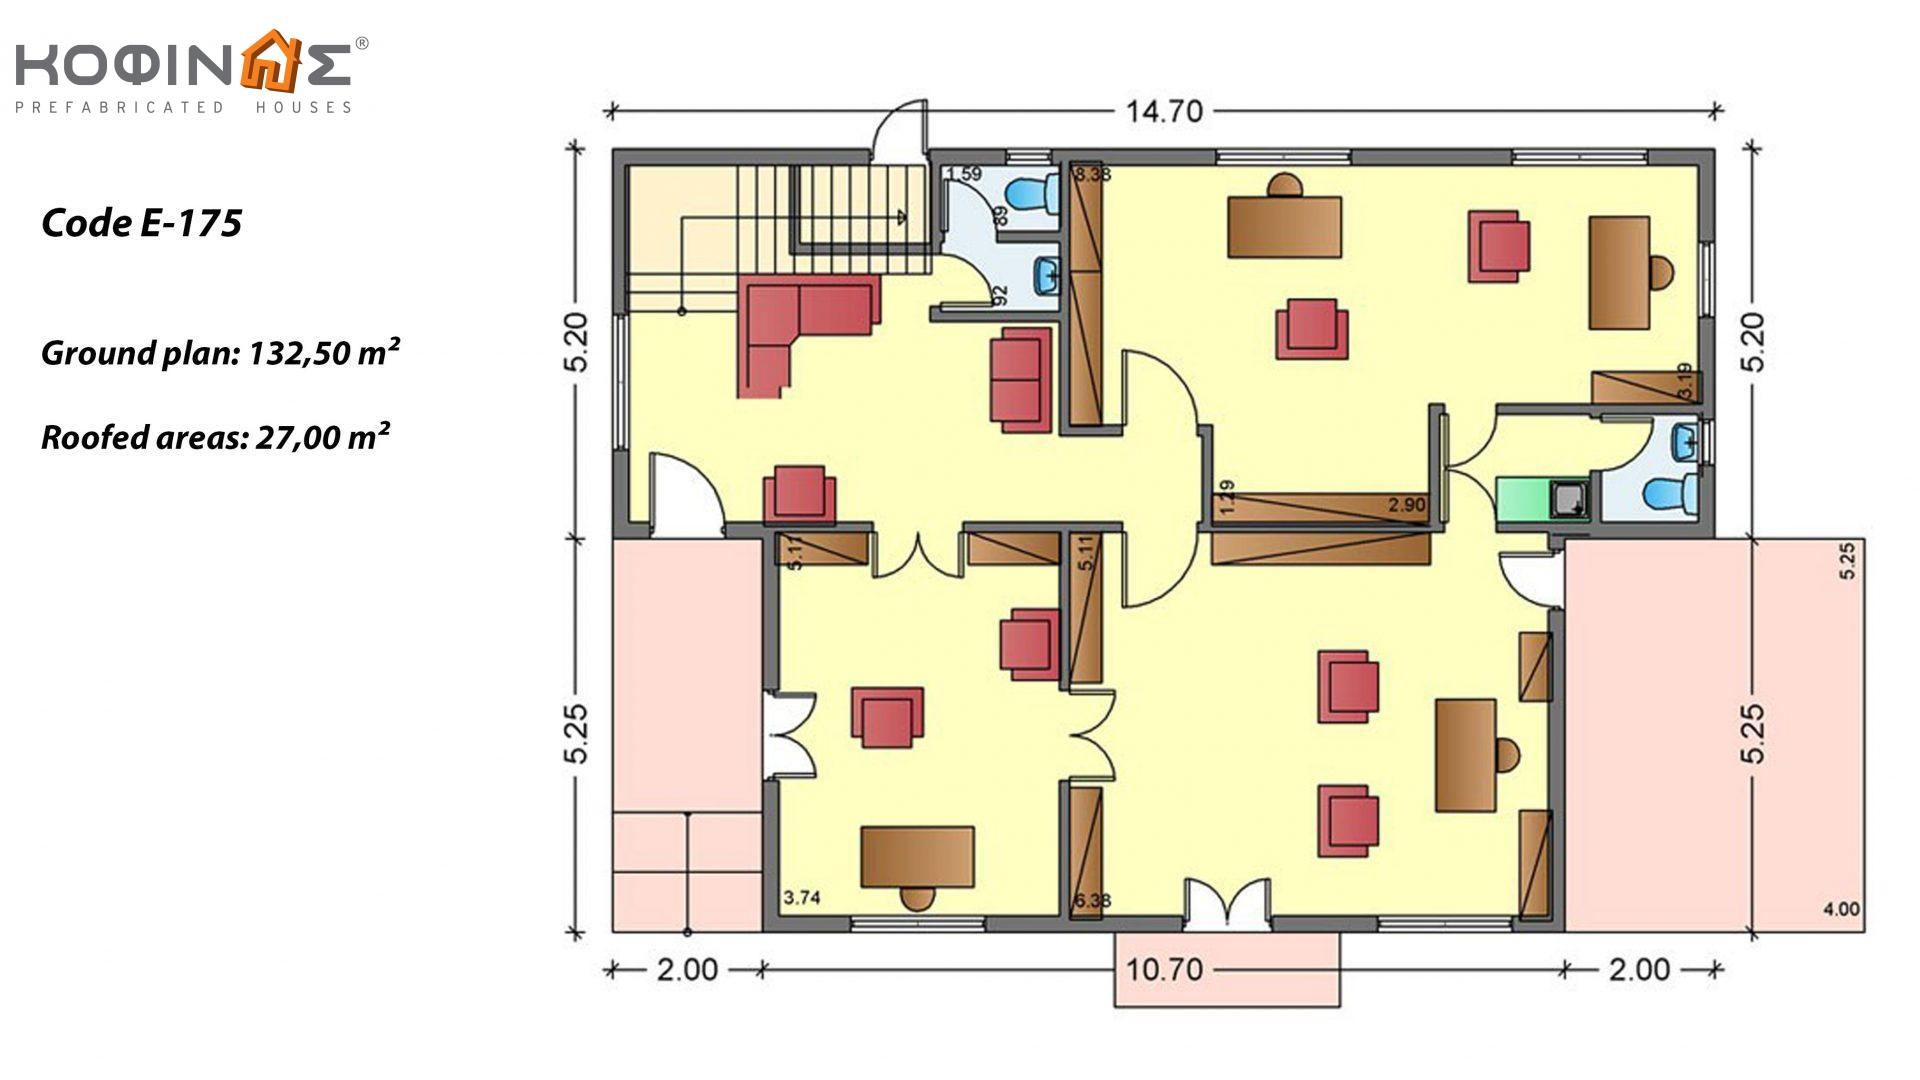 2-story office building E-175, total space of 175,50 m² ,roofed areas 27.00 m², balcony 10.40 m²